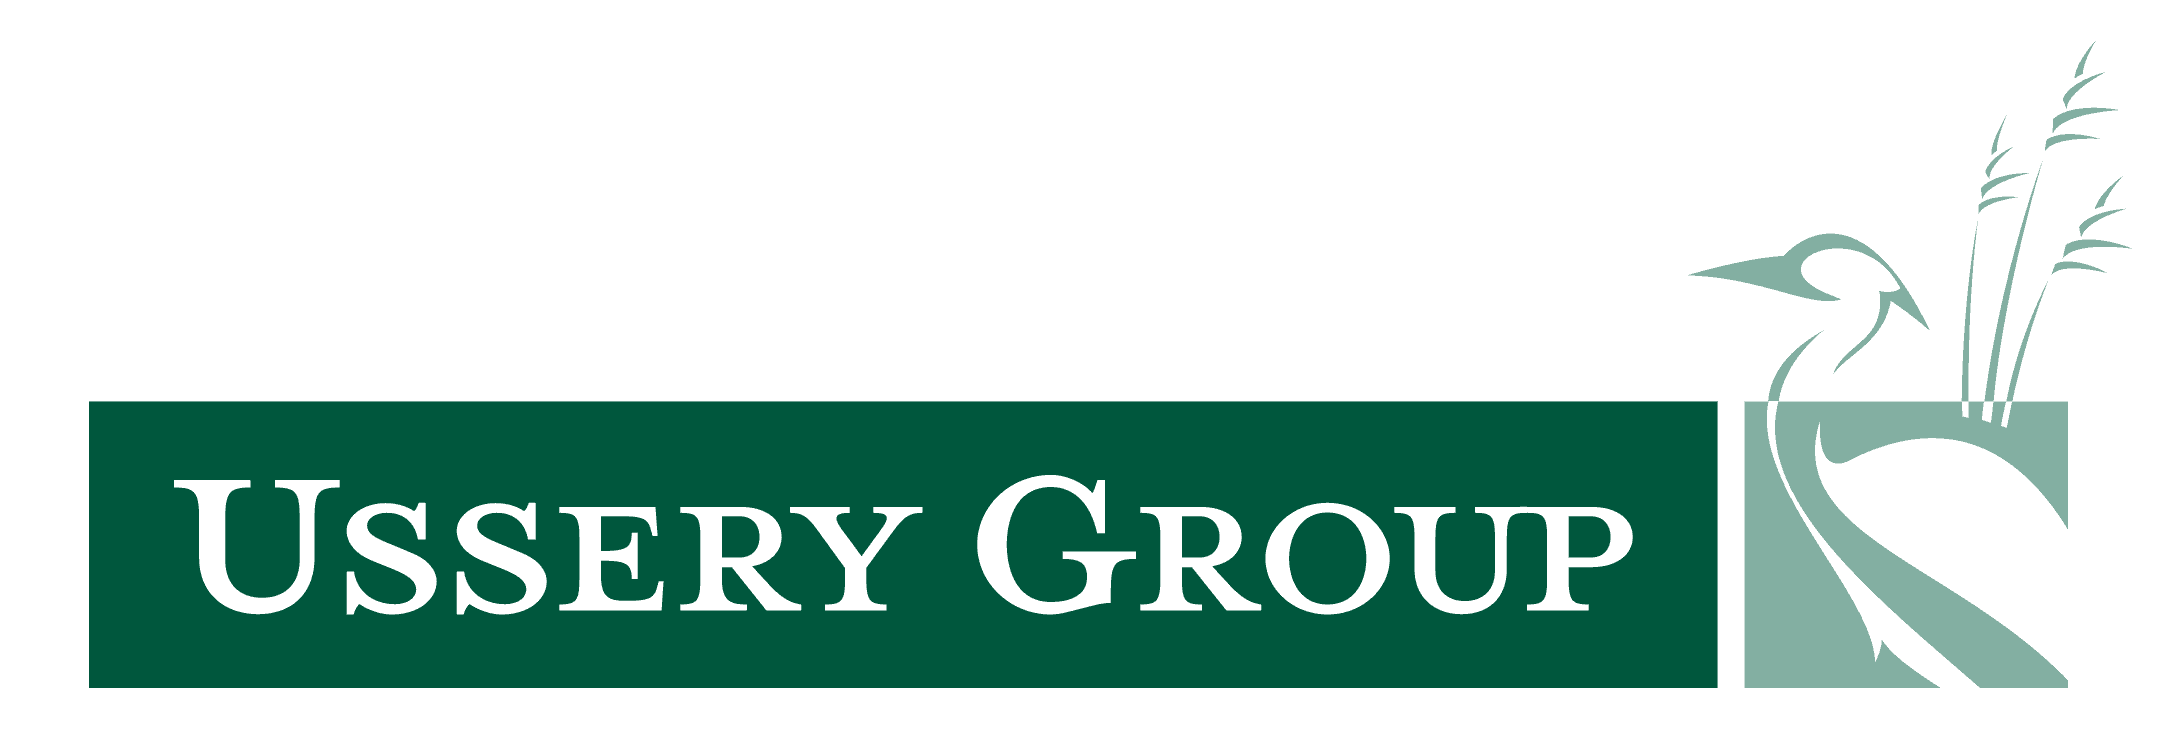 Ussery Group